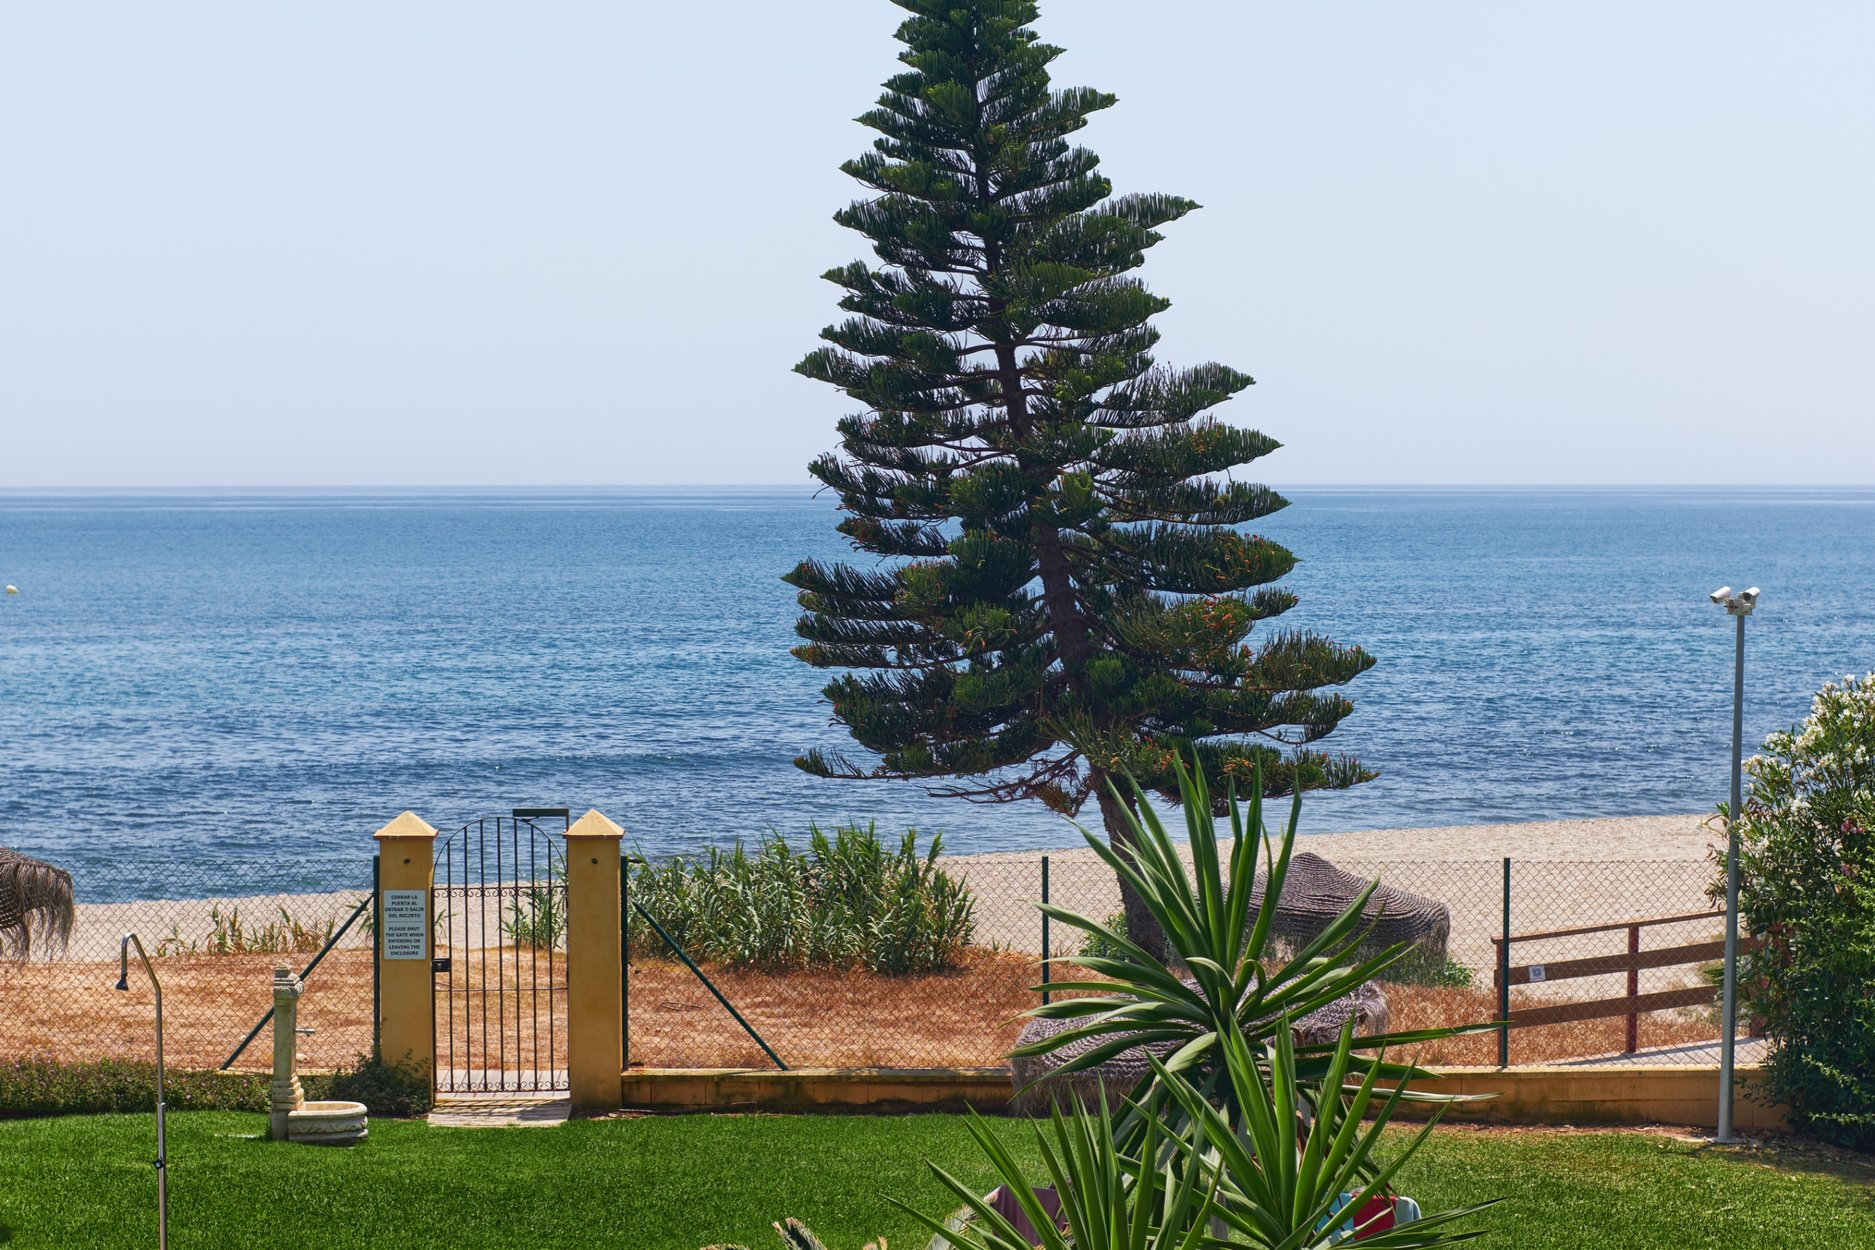 Apartment for sale in Mijas, Royal Beach